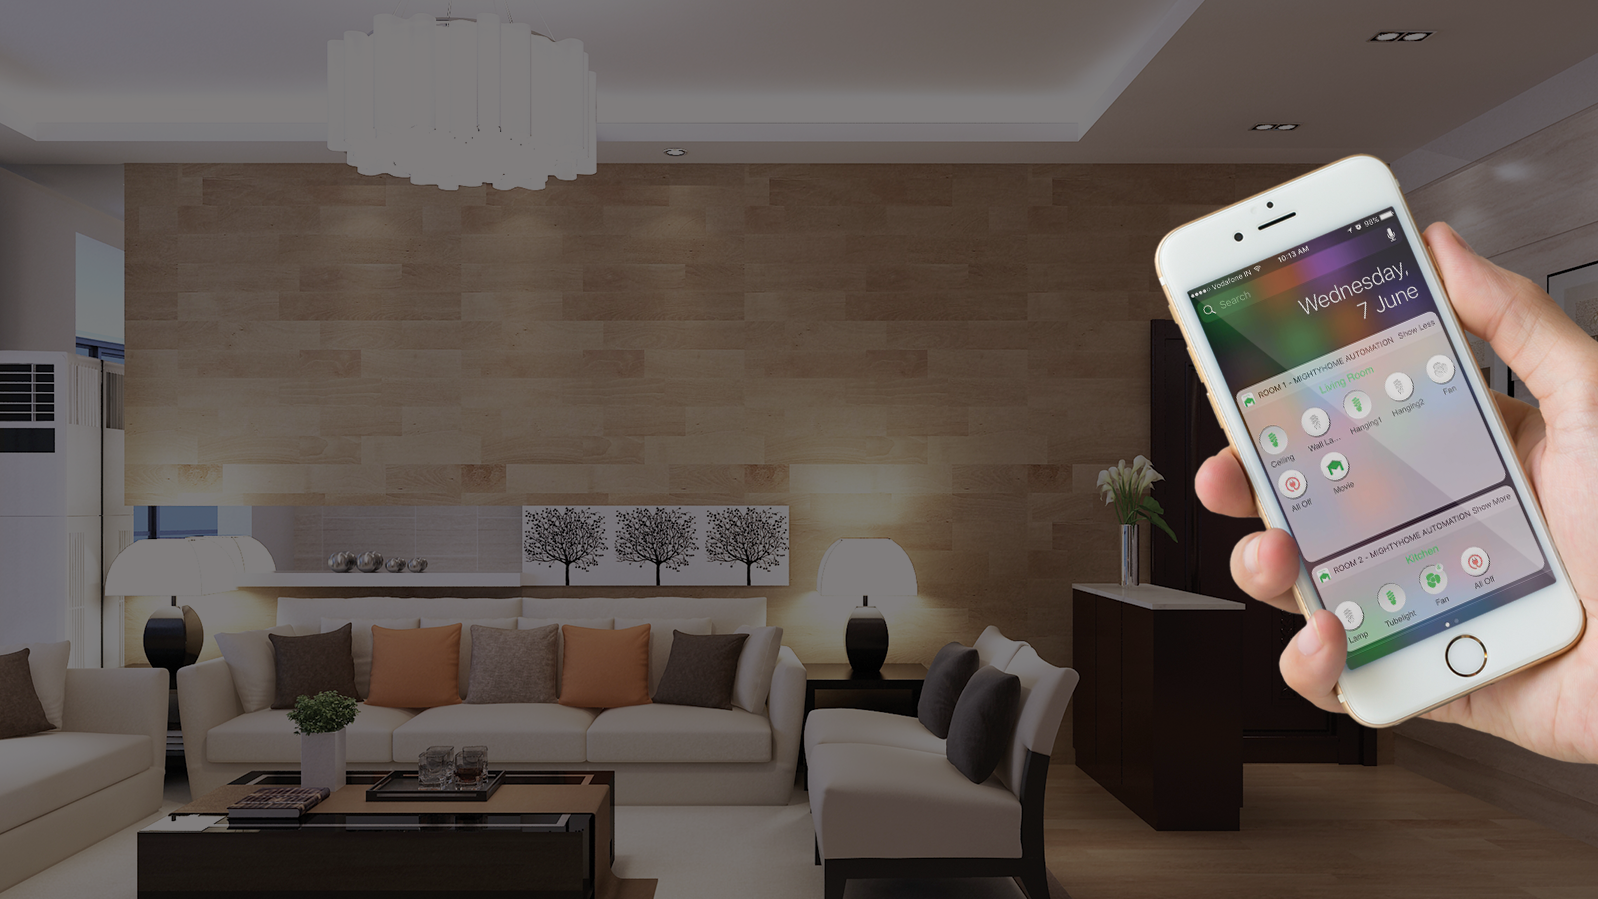 A-Touch Home Automation